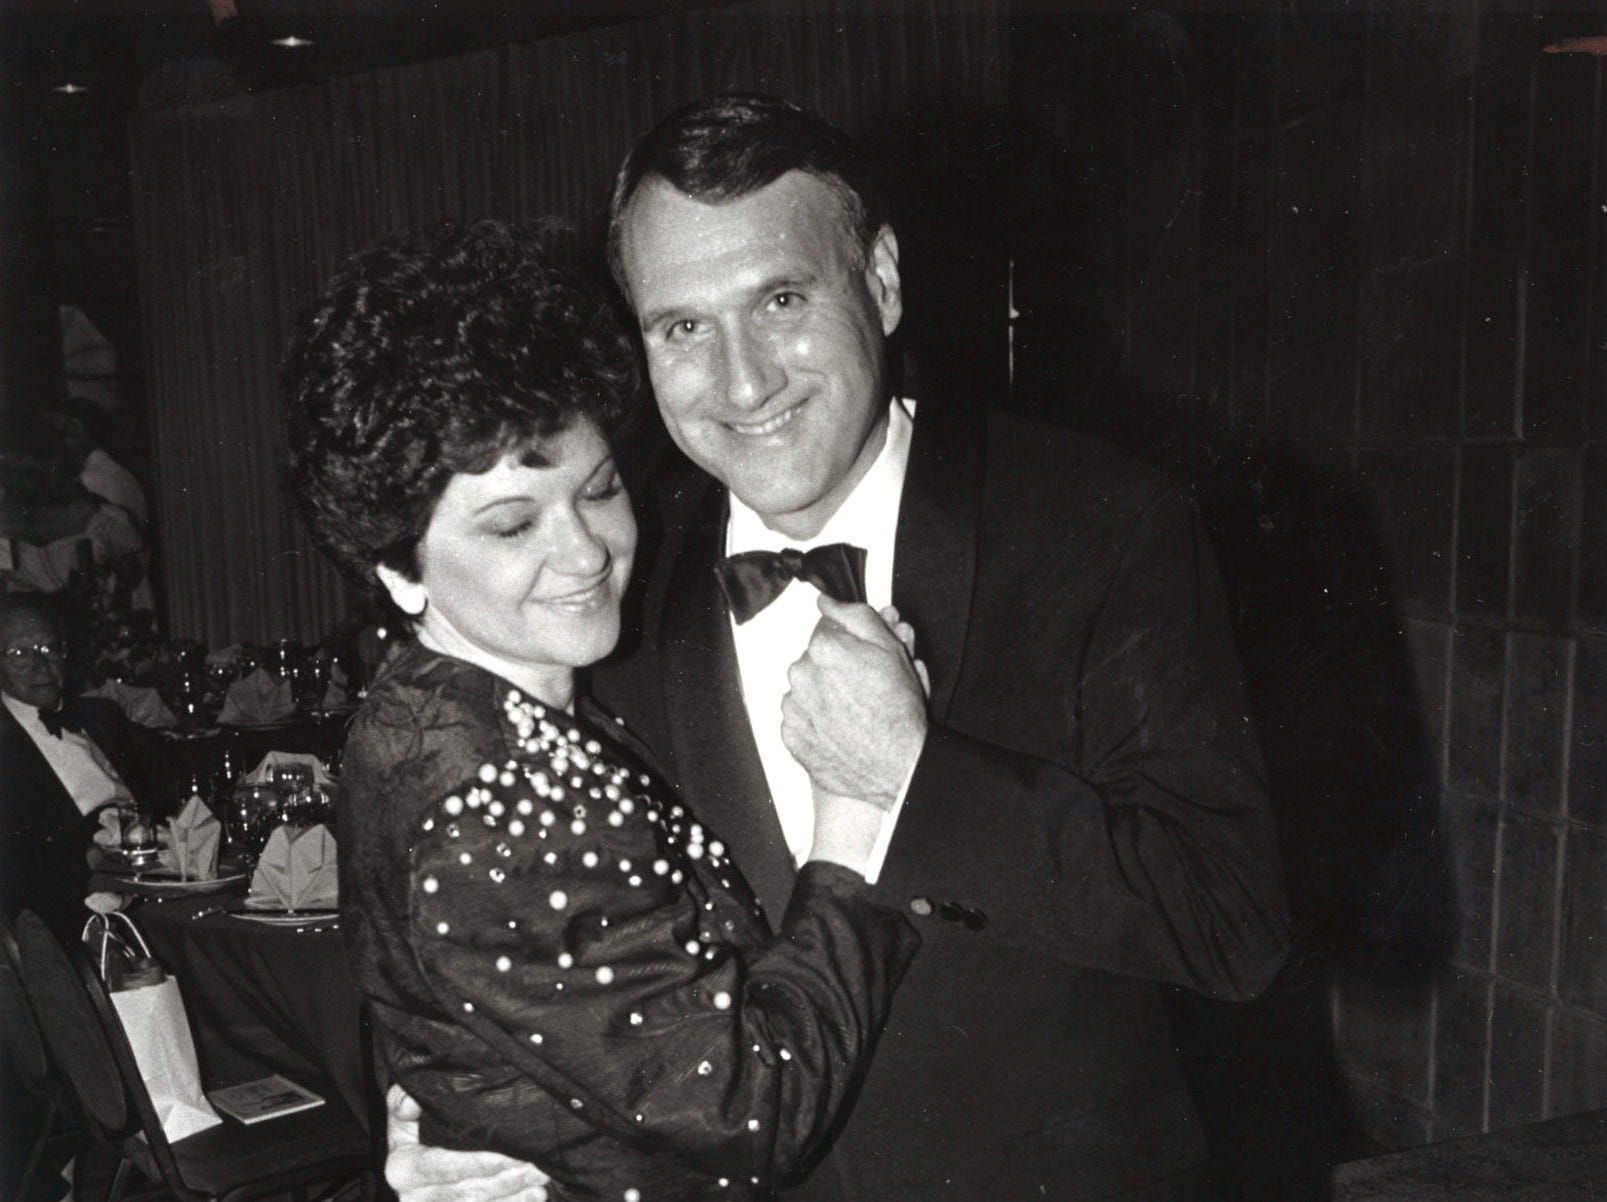 Jon Kyl with his wife Caryll Kyl dancing on April 30, 1990.